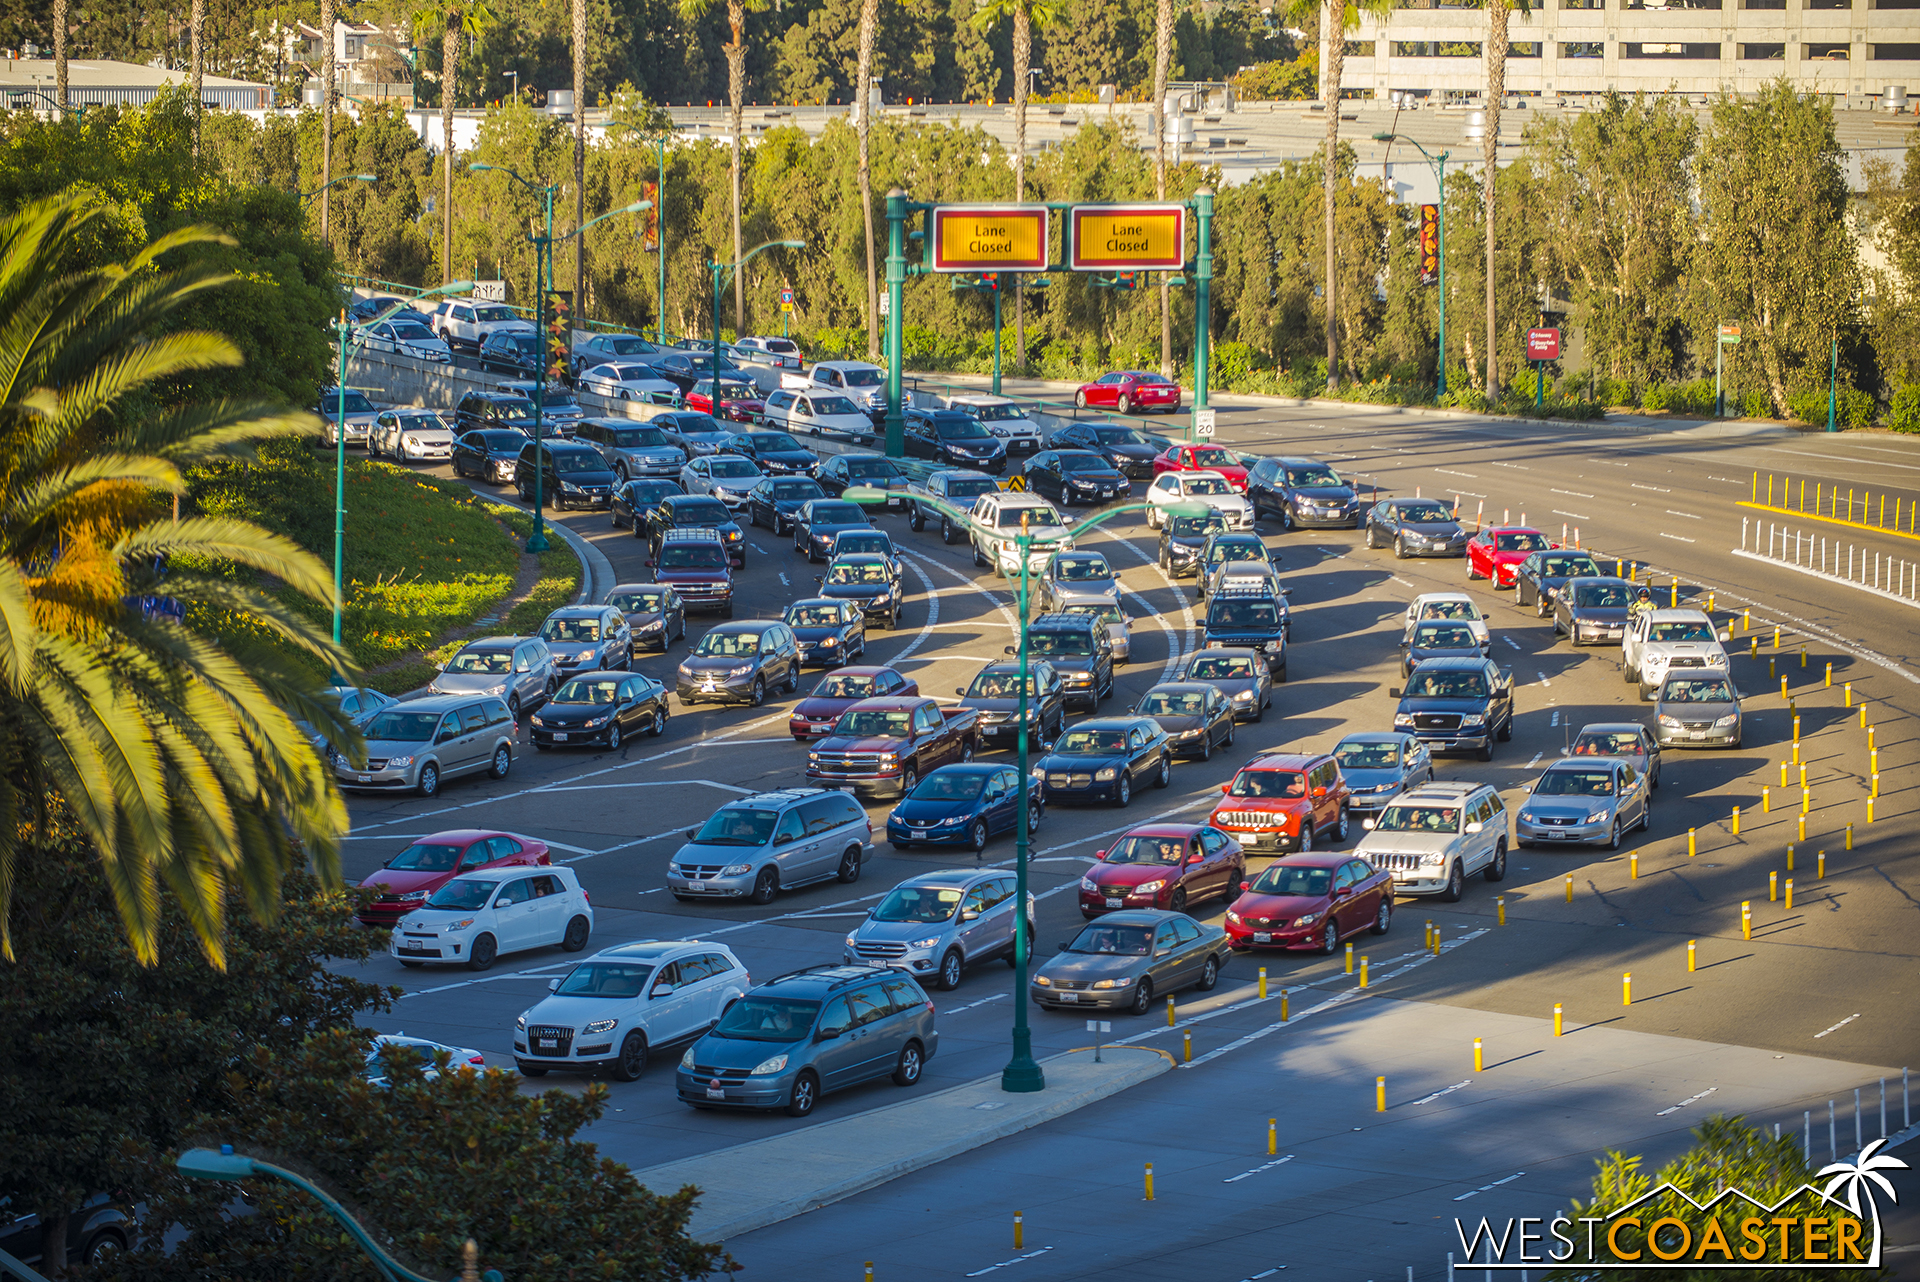 Remember when I said get to the parks early for Mickey's Halloween Party?  This is why.  At 4:00pm of Friday, the parking structure was backed up out of the structure.  An hour later, it looked like this, with cars backed up past Ball Road and over the express bridge as well.